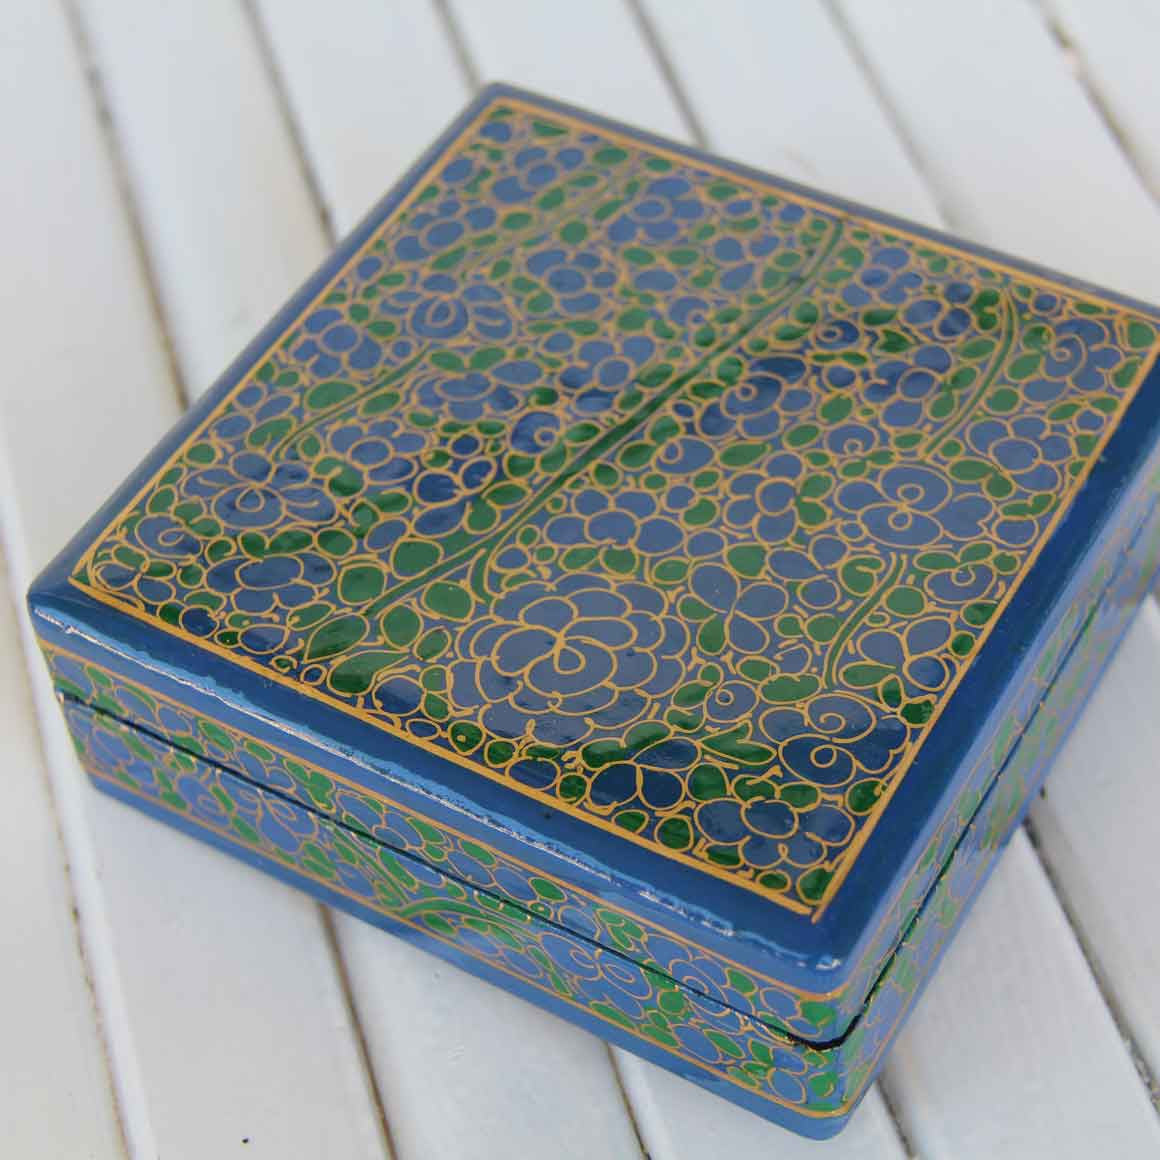 Fair Trade Ethical Square Wooden Coaster Set  Blue